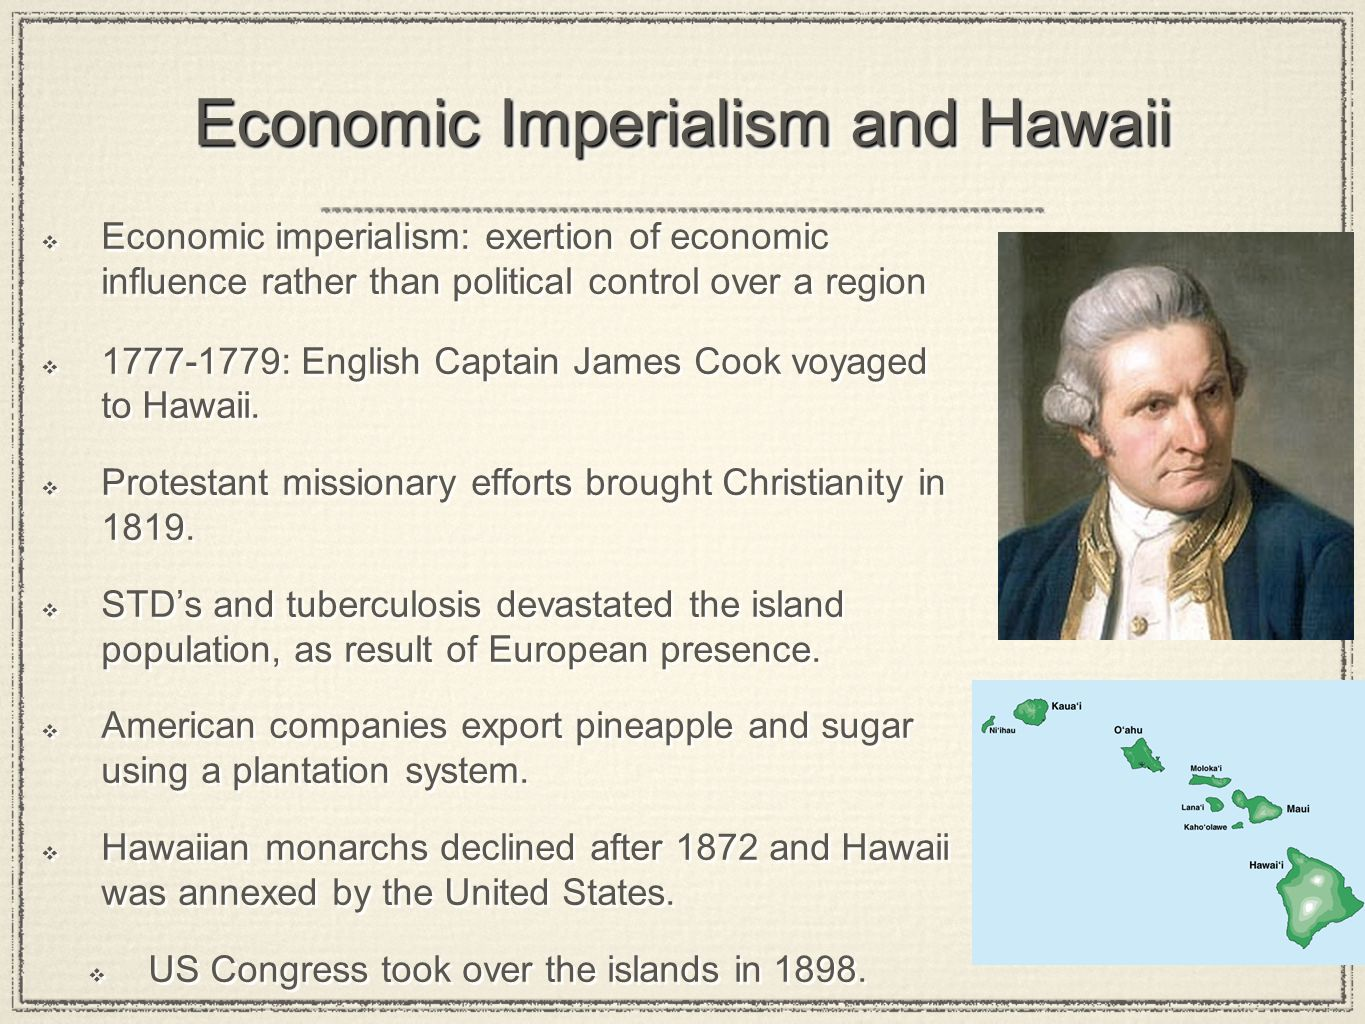 Economic Imperialism and Hawaii